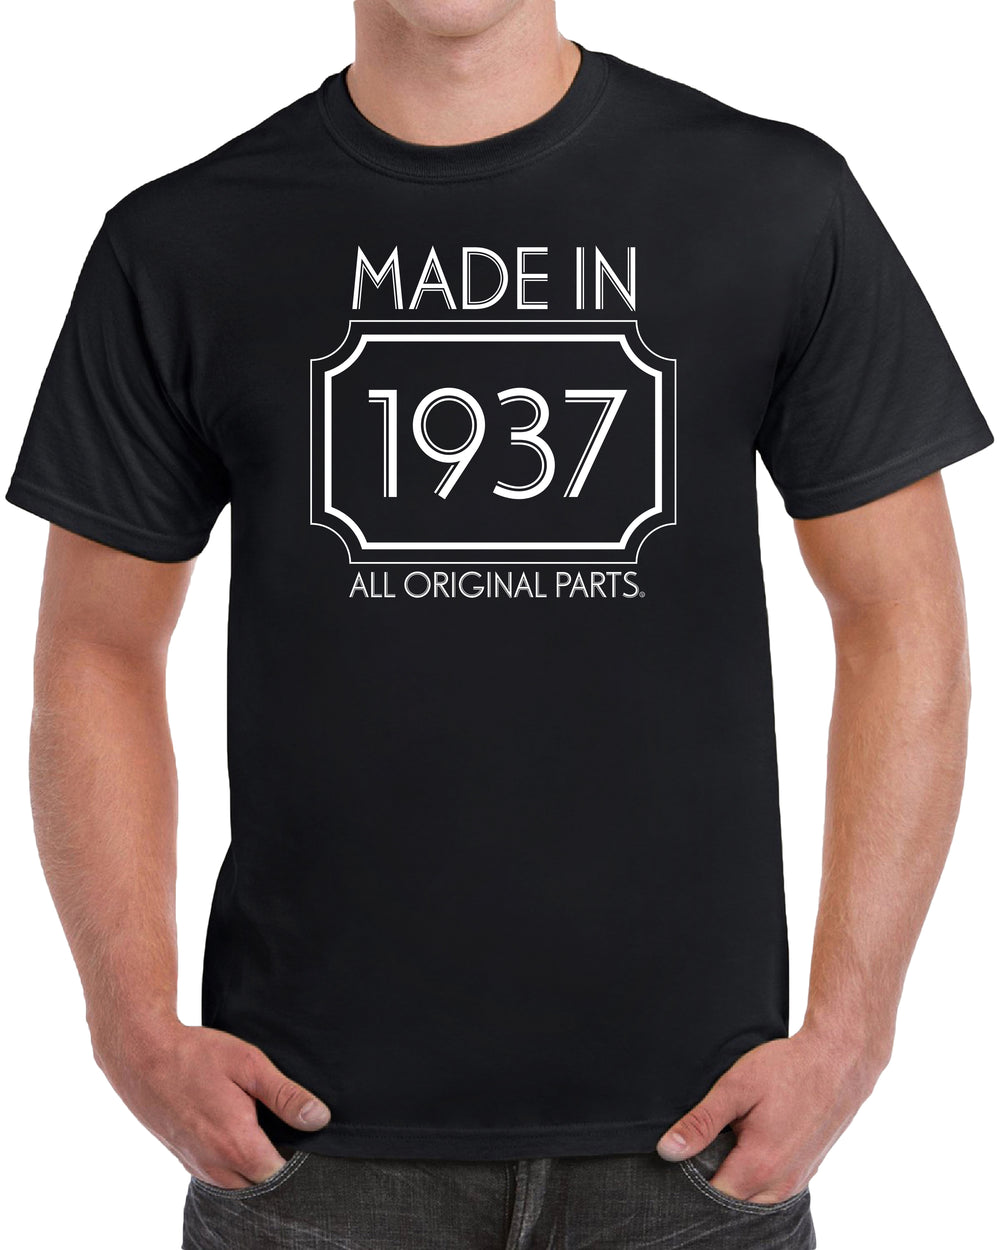 Made in 1937, All Original Parts - Solid Print